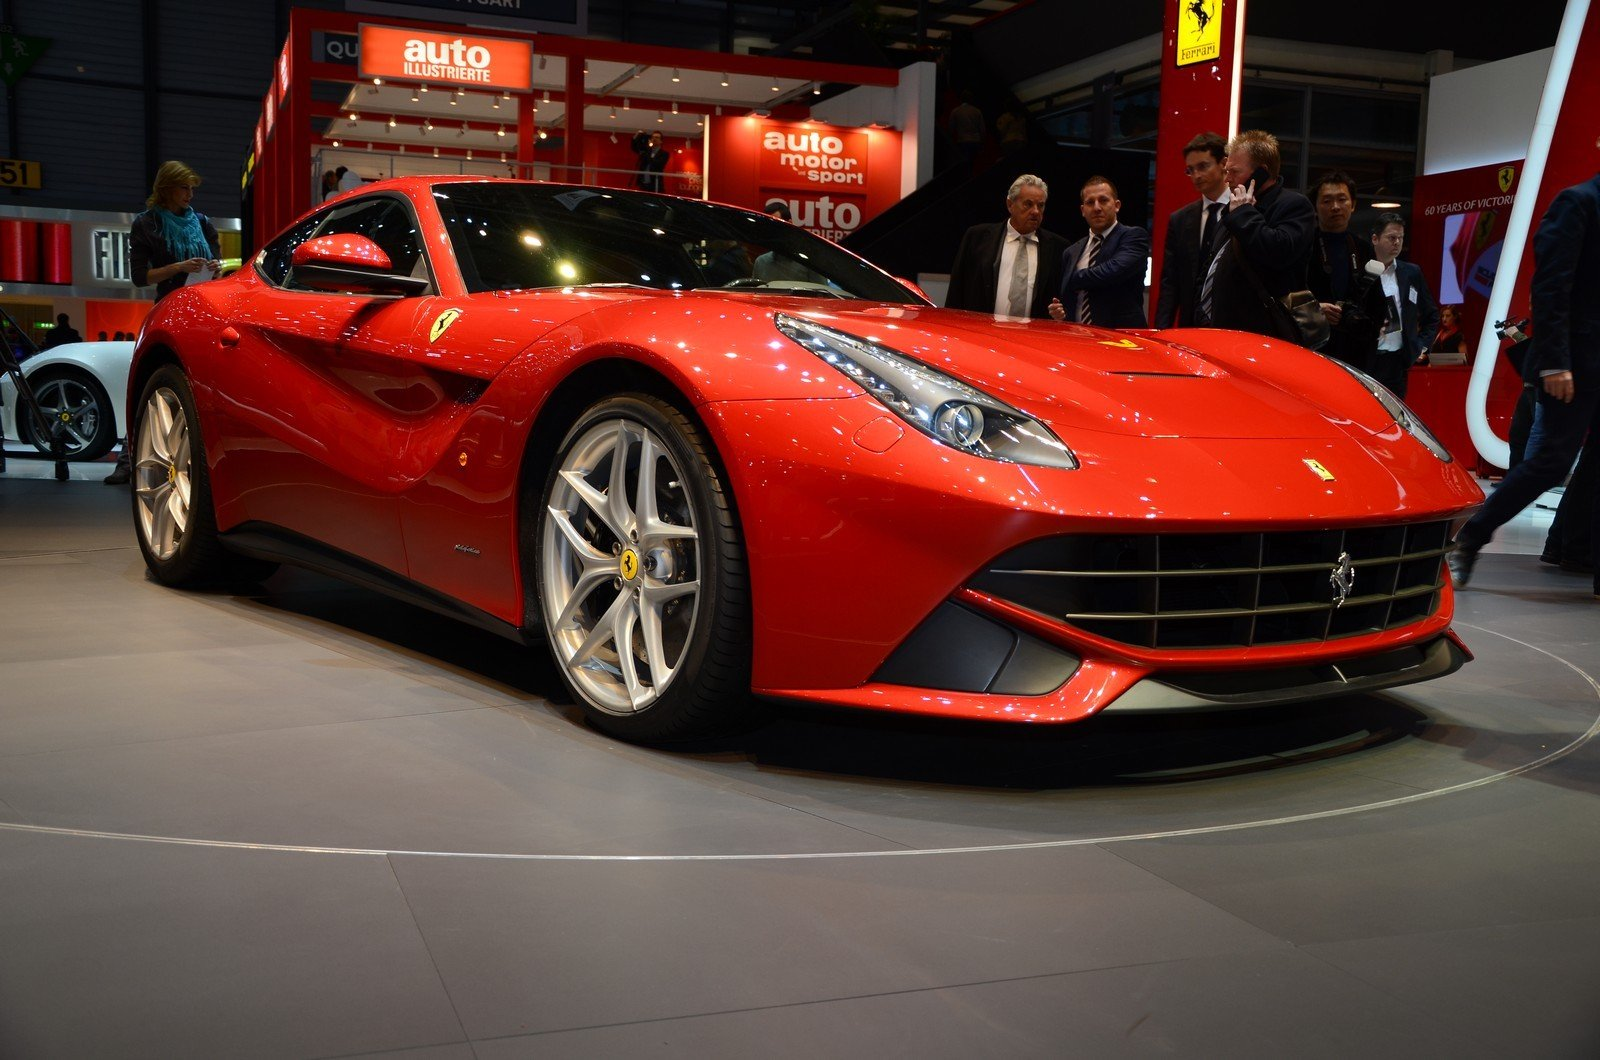 2013 ferrari f12 berlinetta picture 441826 car review top speed. Black Bedroom Furniture Sets. Home Design Ideas